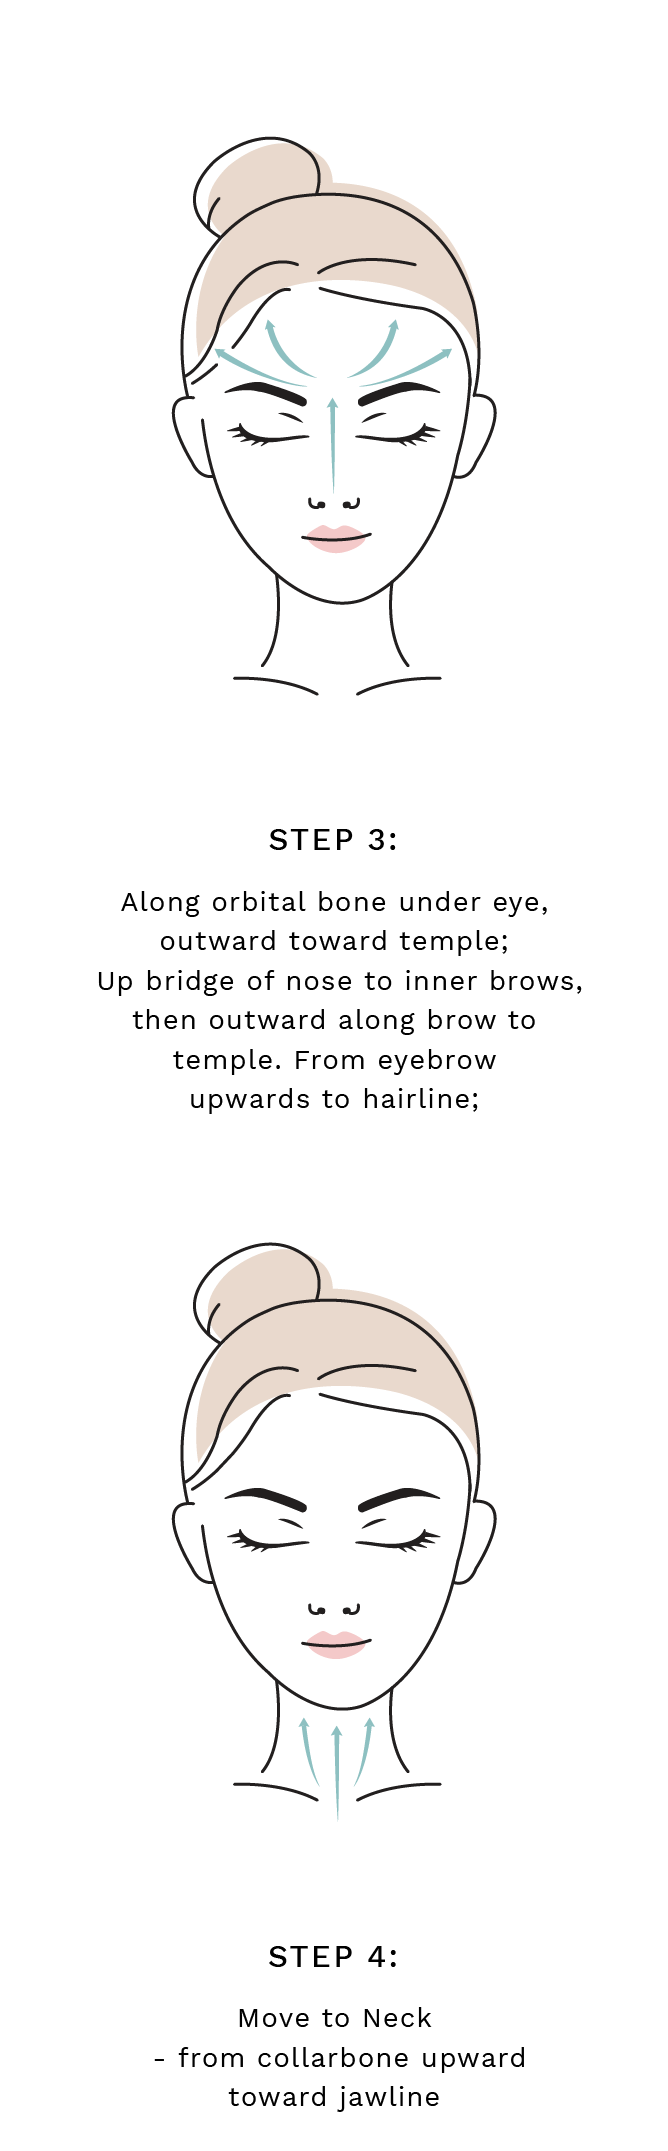 Step 3: Along orbital bone under eye, outward toward temple;  Up bridge of nose to inner brows, then outward along brow to temple. From eyebrow upwards to hairline; Step 4: Move to Neck - from collarbone upward toward jawline